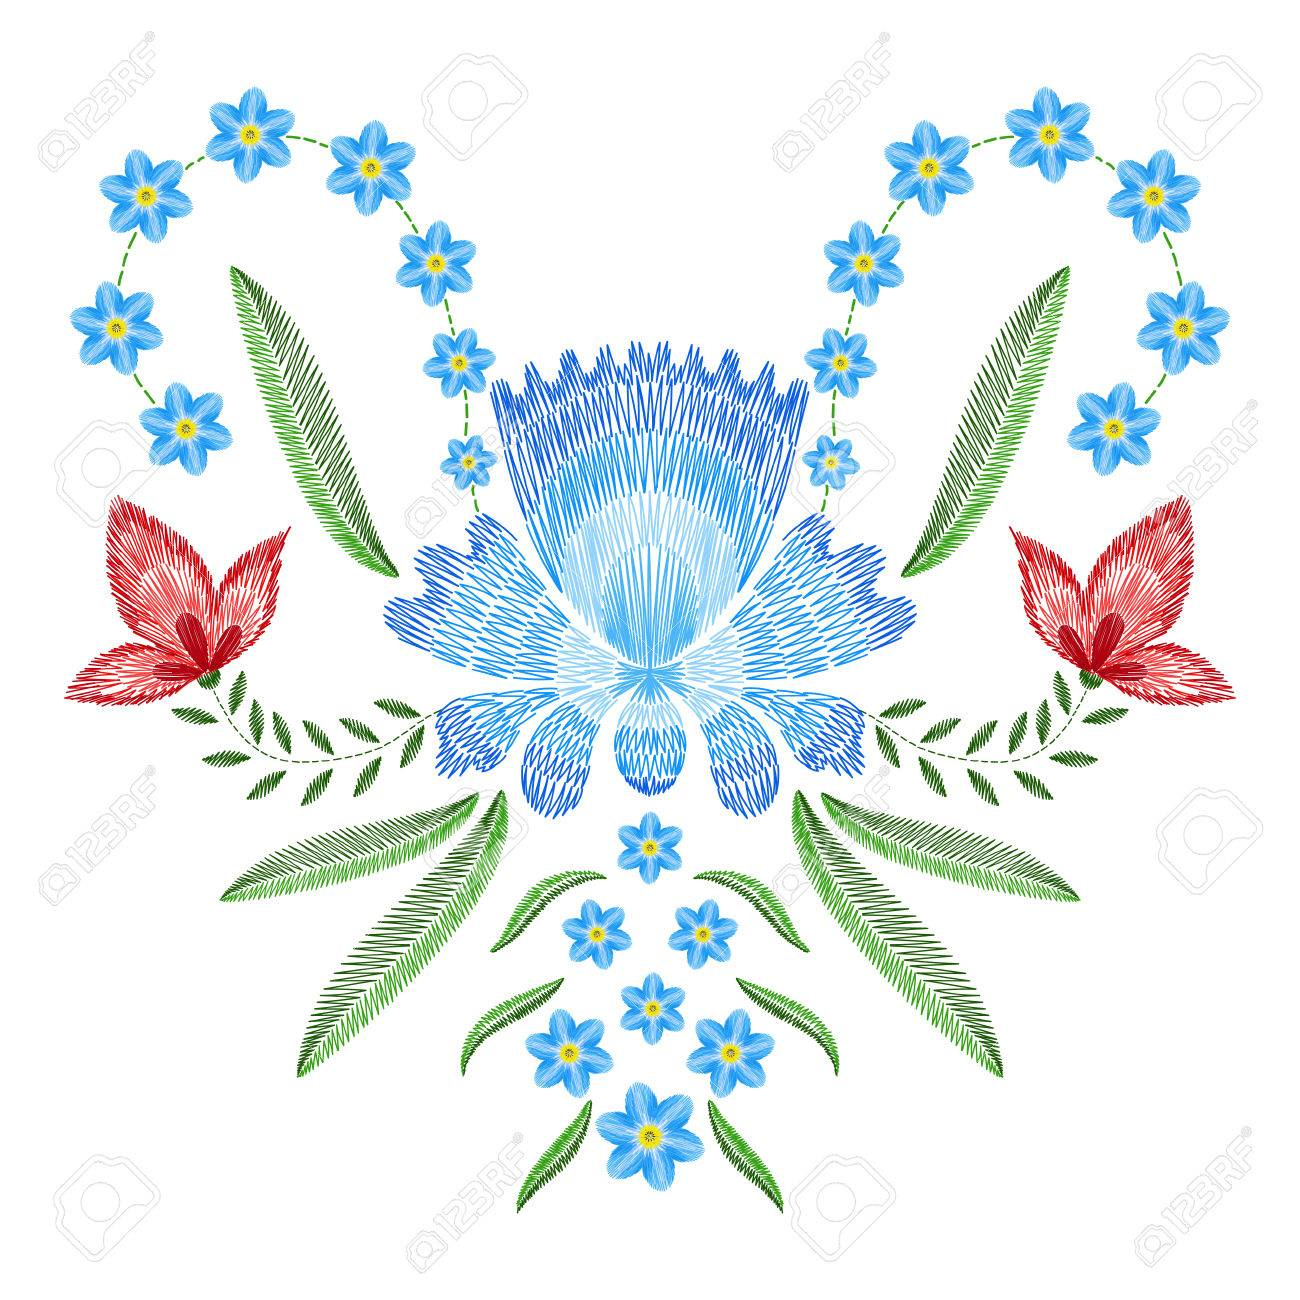 Embroidery Stitches With Spring Flowers Forget Me Not Fashion